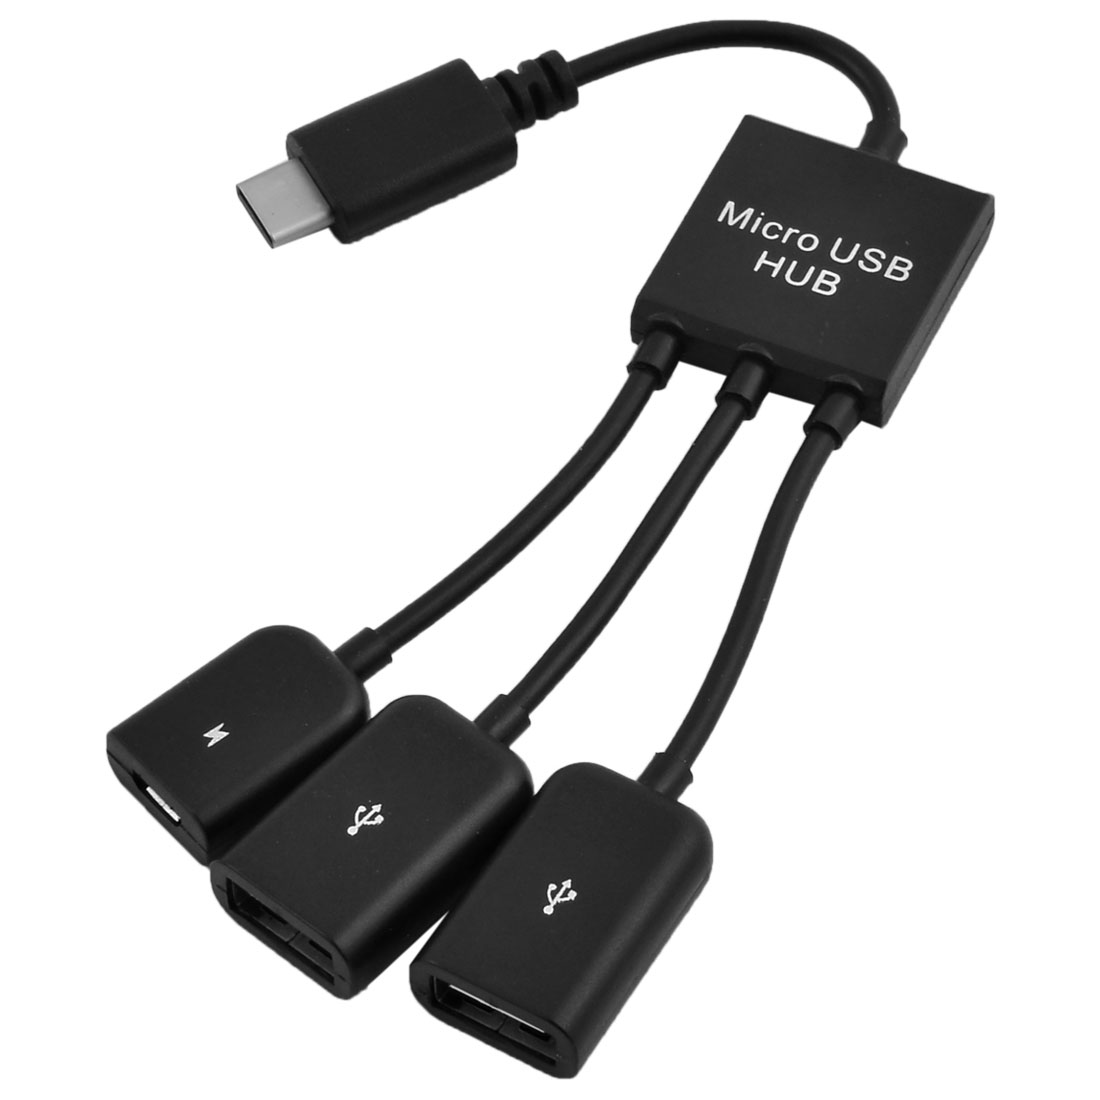 3 in 1 Micro USB OTG Hub Host Extension Charging Cable Adapter Black